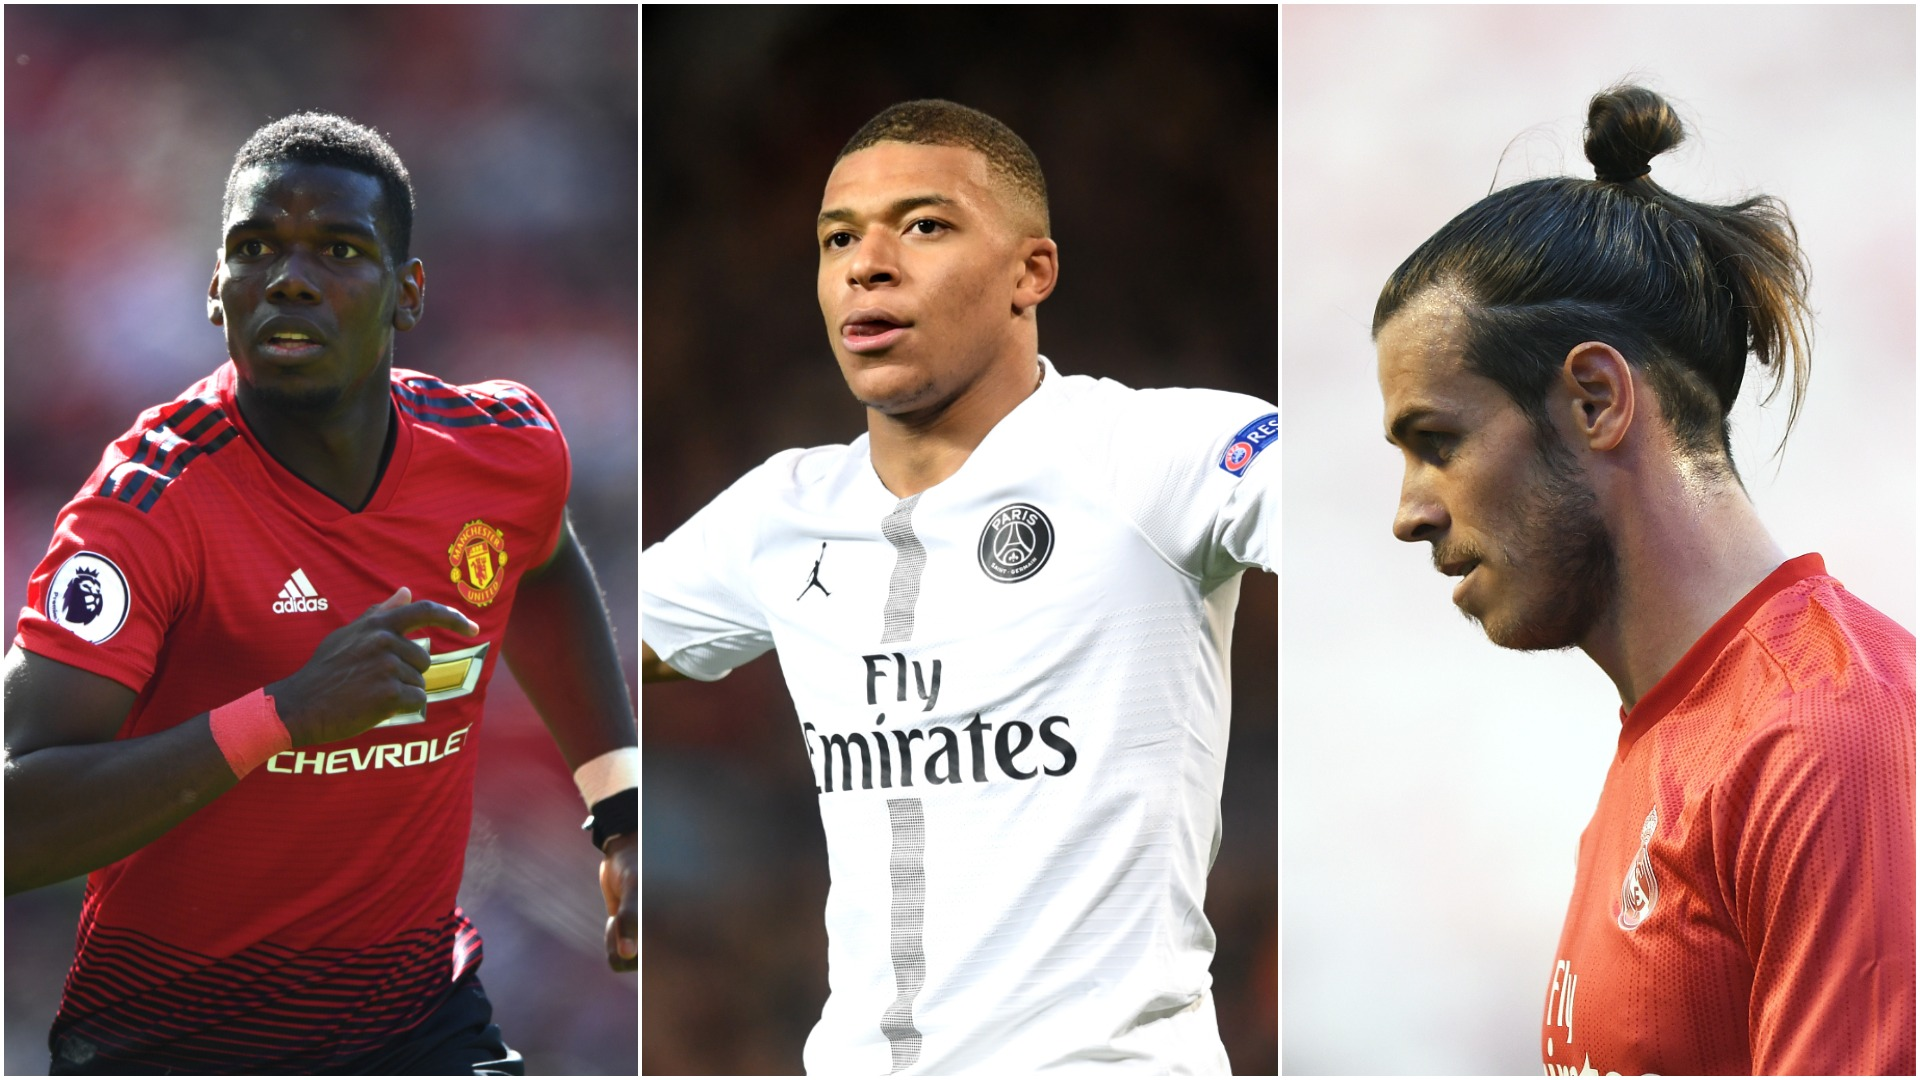 Pogba, Hazard and Mbappe in, Bale and Isco out? - Real Madrid set for busy close-season